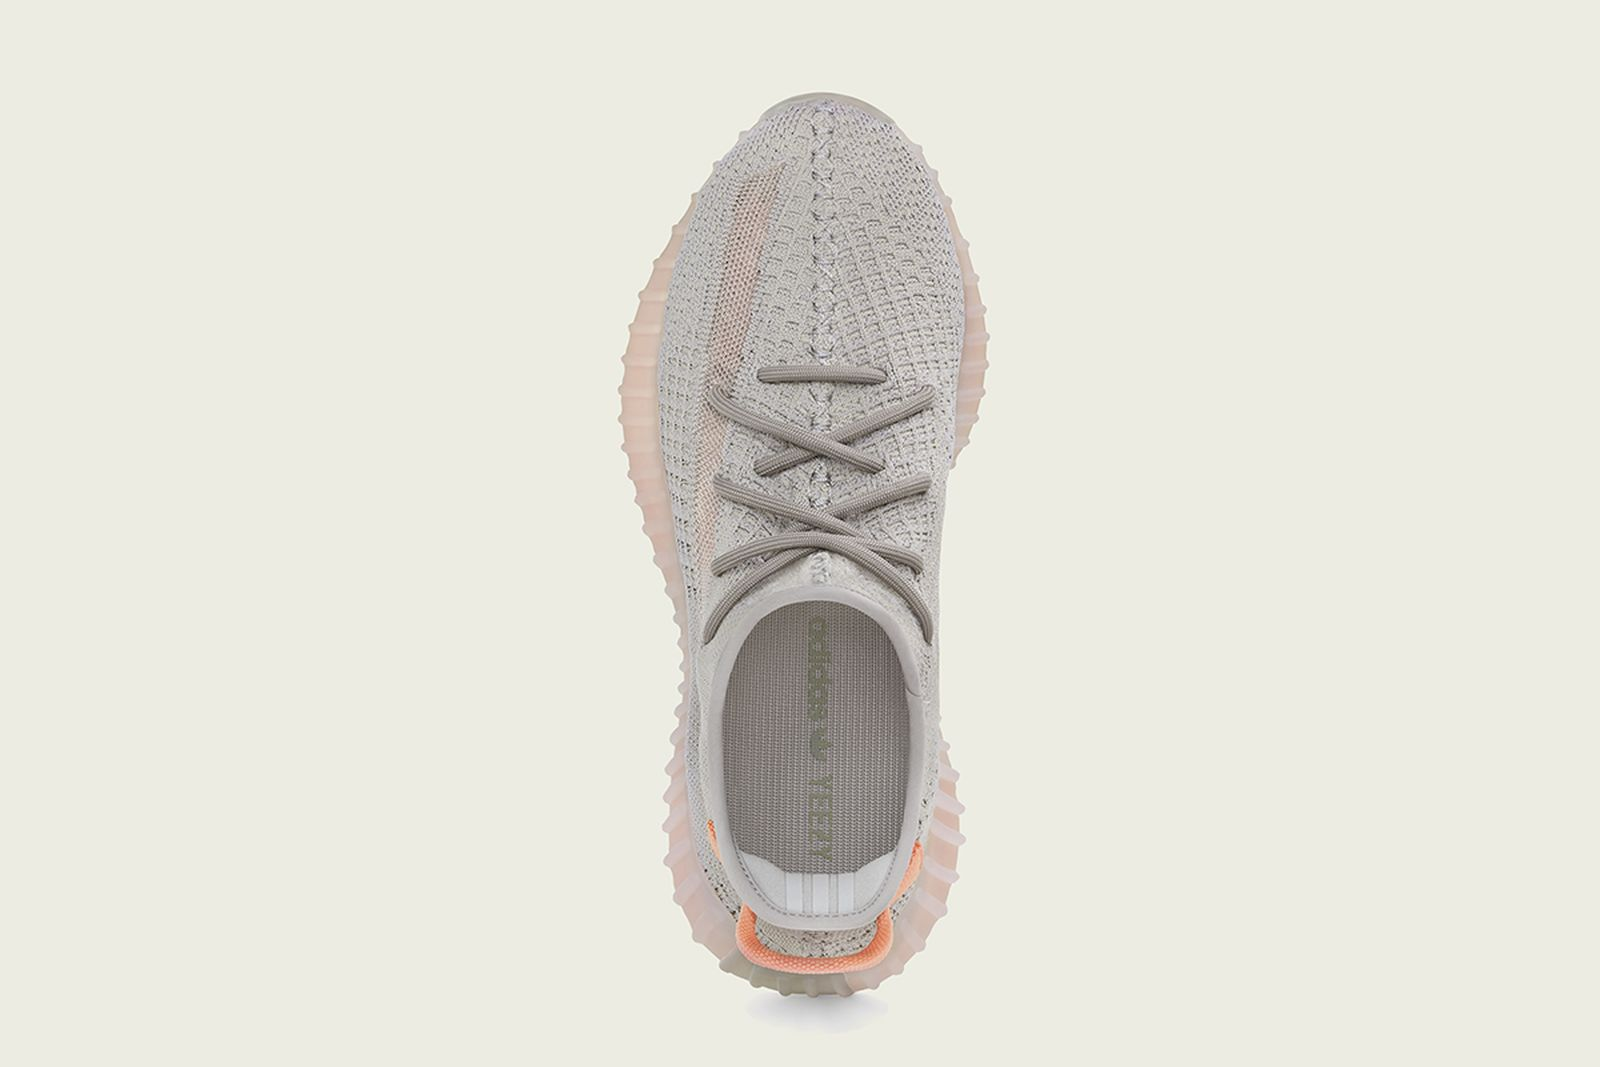 adidas yeezy boost 350 v2 true form release date price kanye west